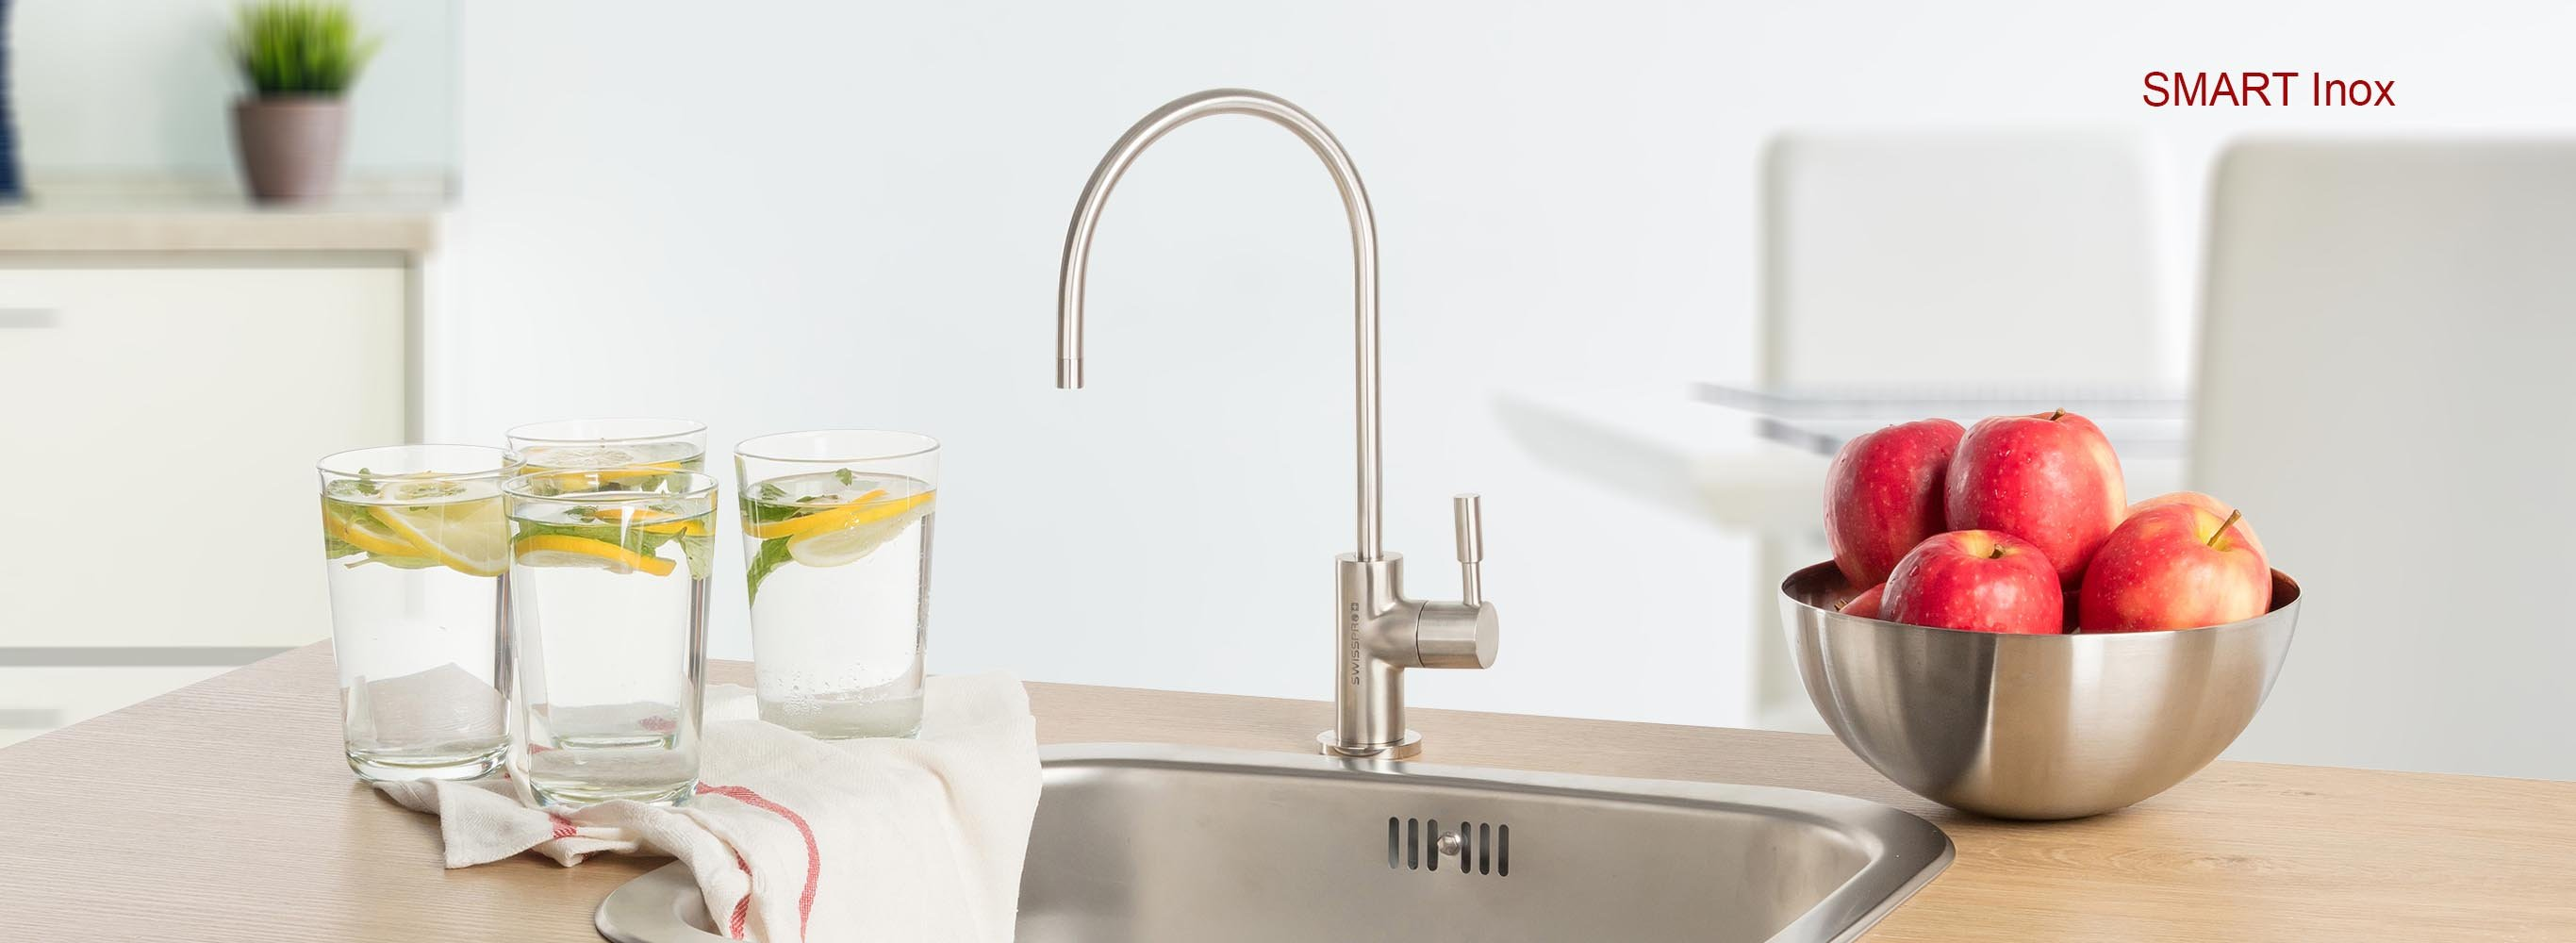 Smart Inox - Separate Drinking Tap